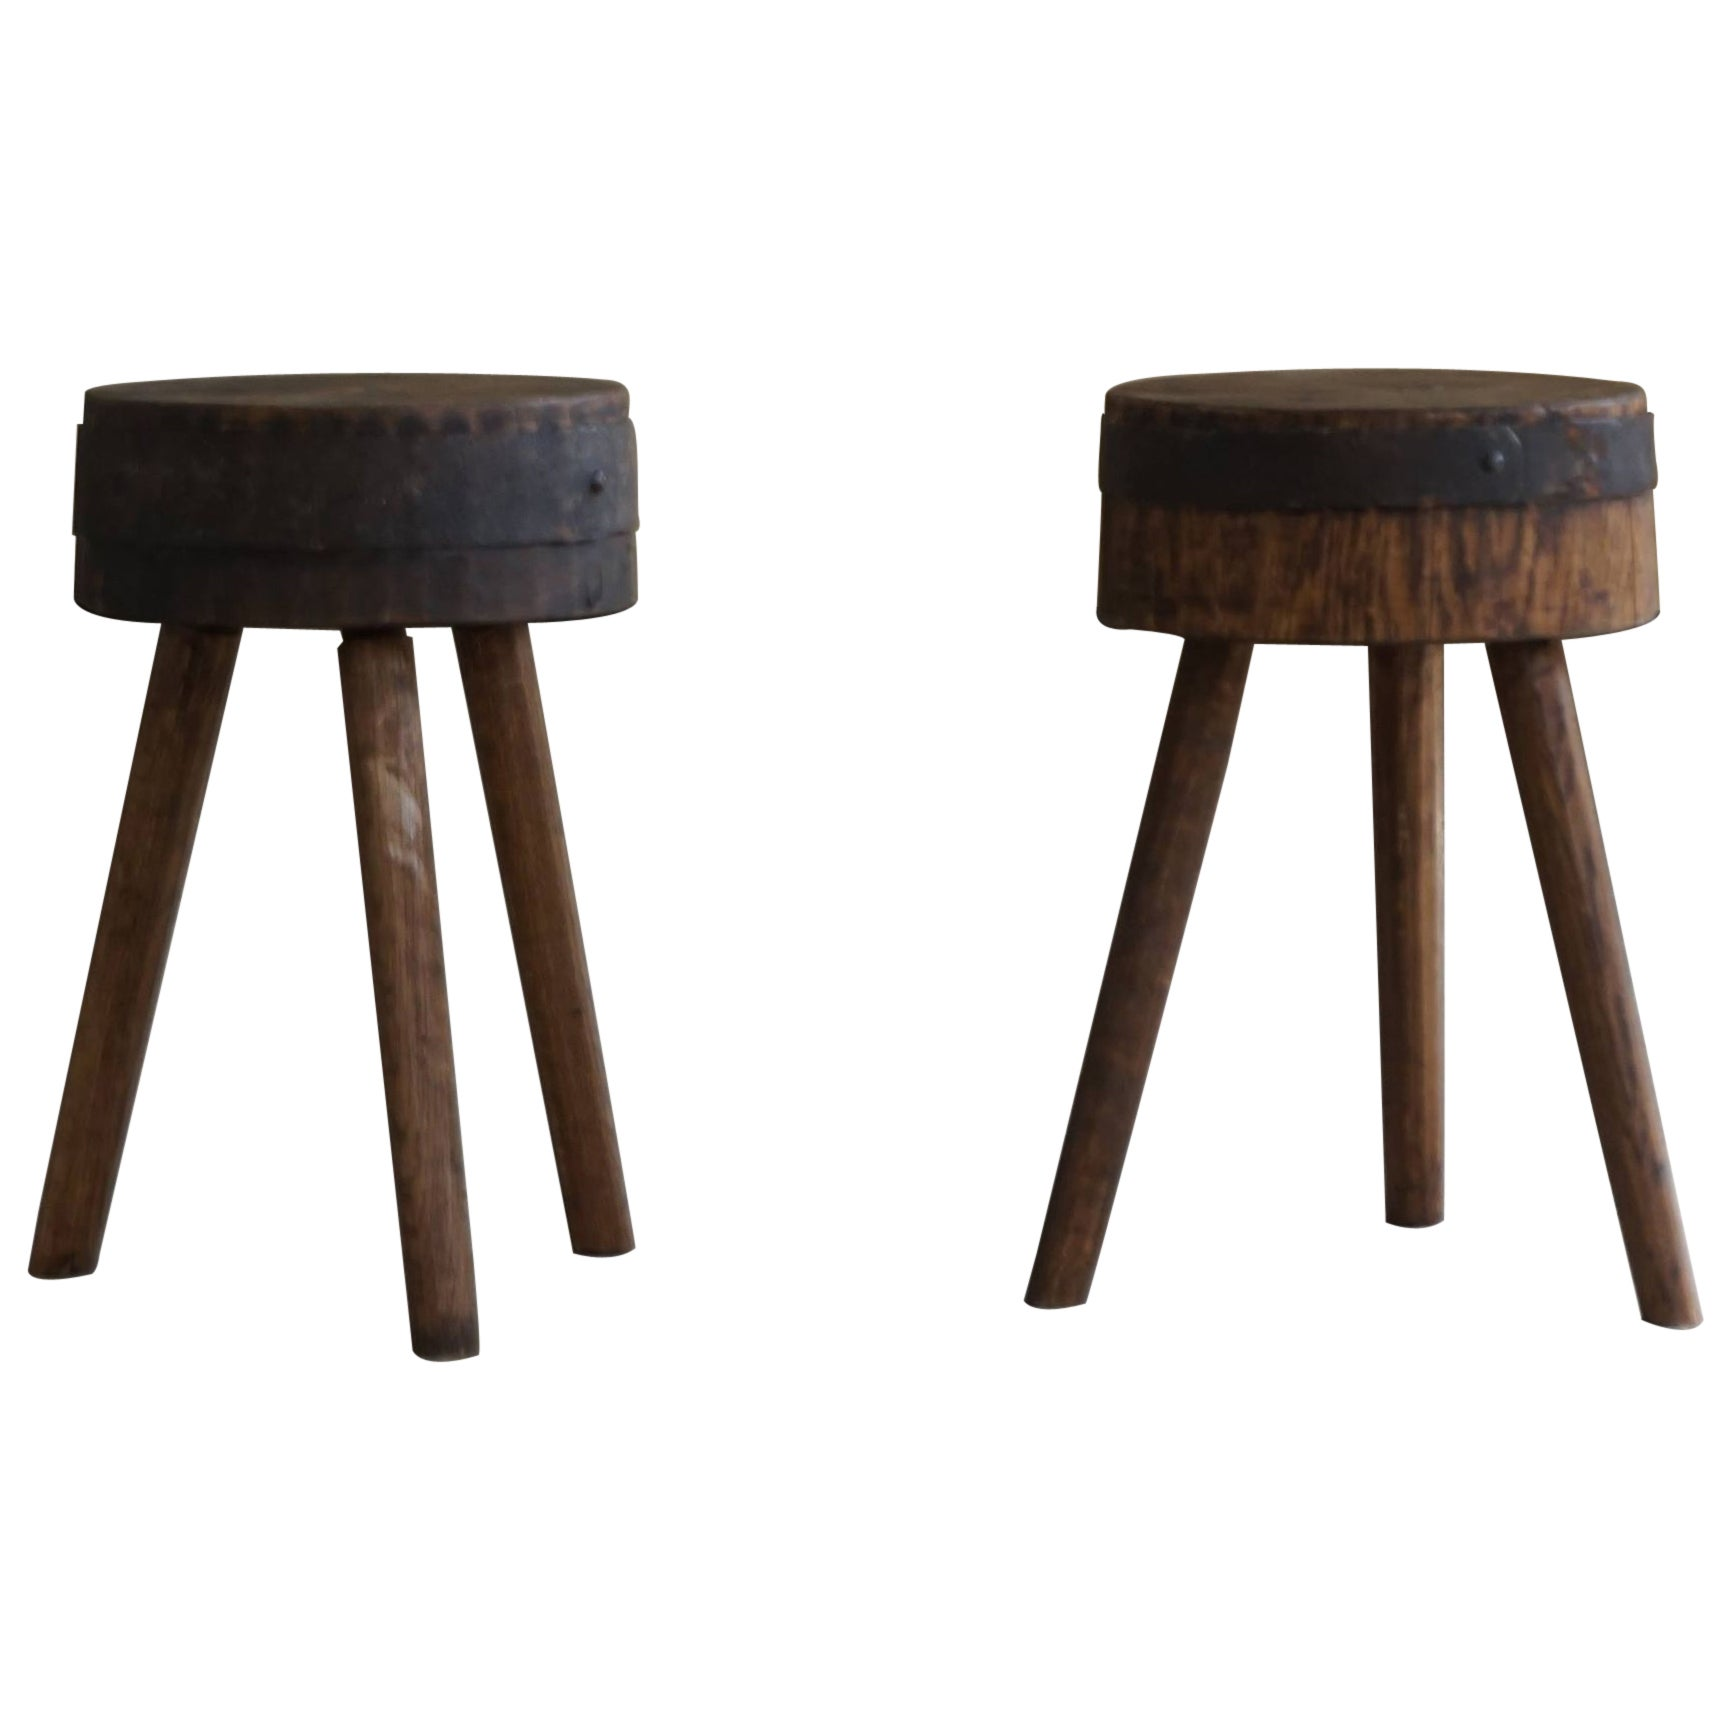 Pair of Swedish Rustic Stools in Solid Wood, Early 20th Century